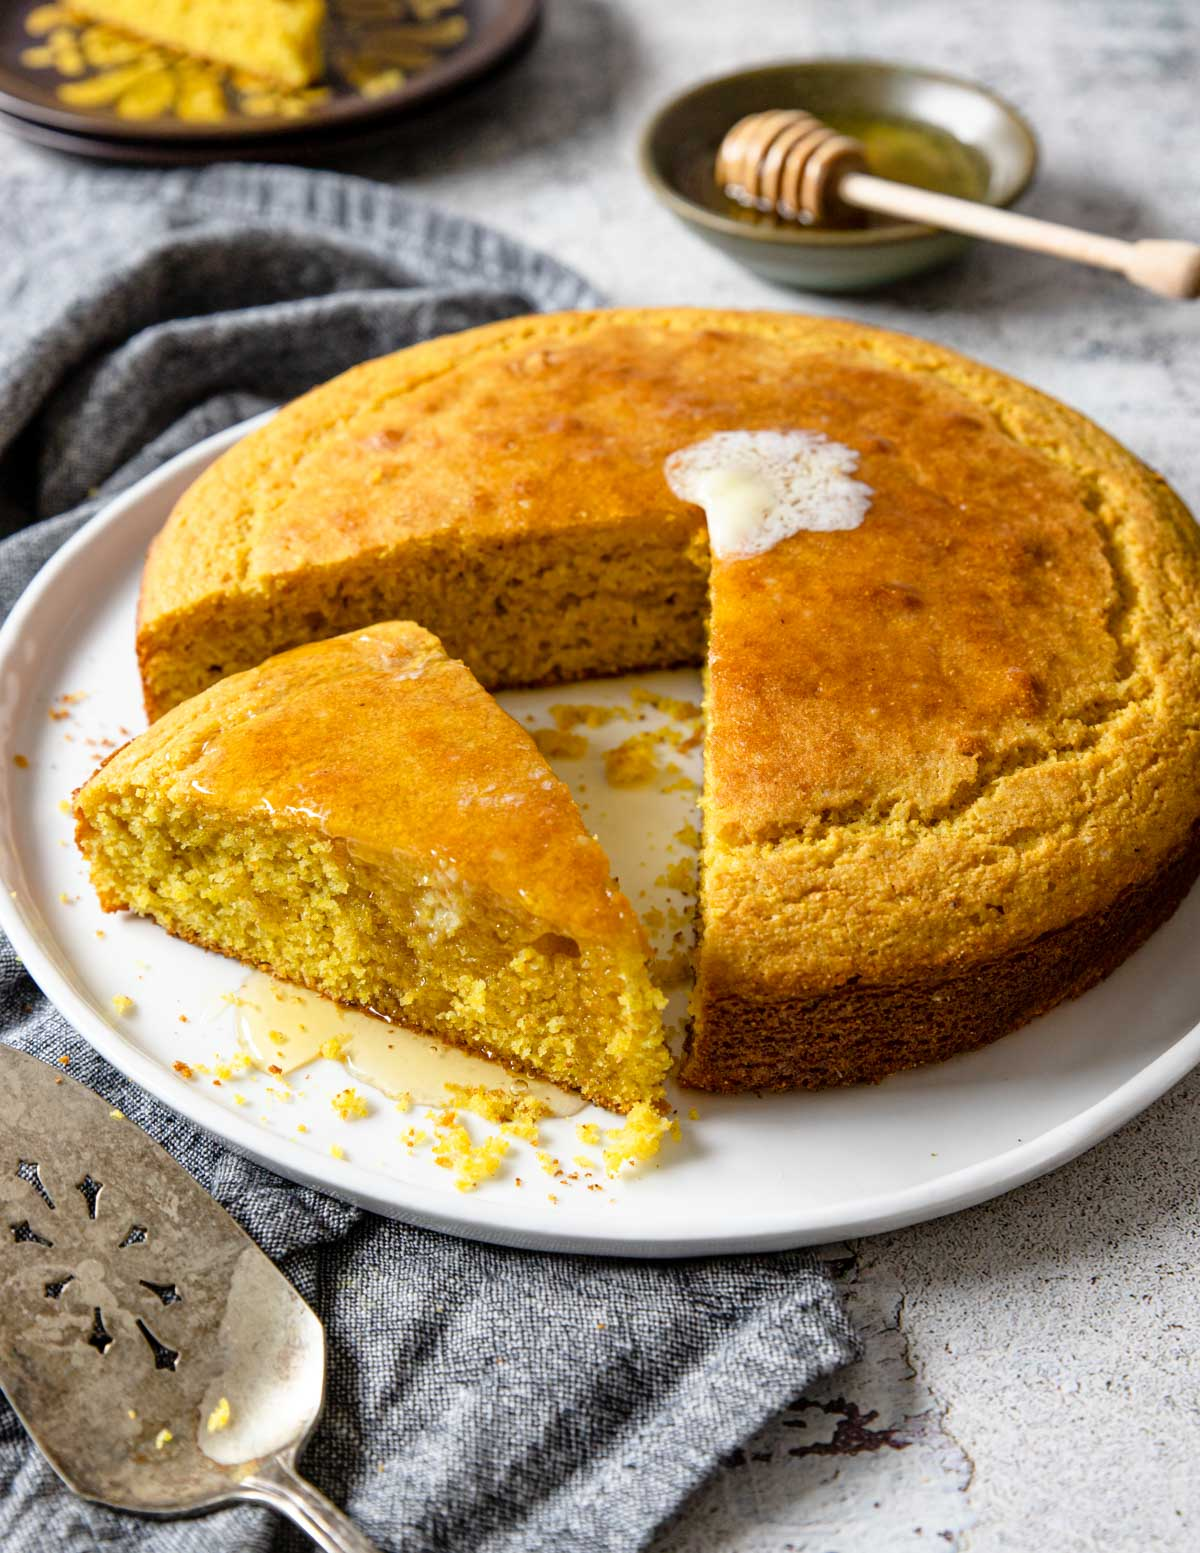 cornbread round with a pat of butter on top, and a slice angled out of the cornbread